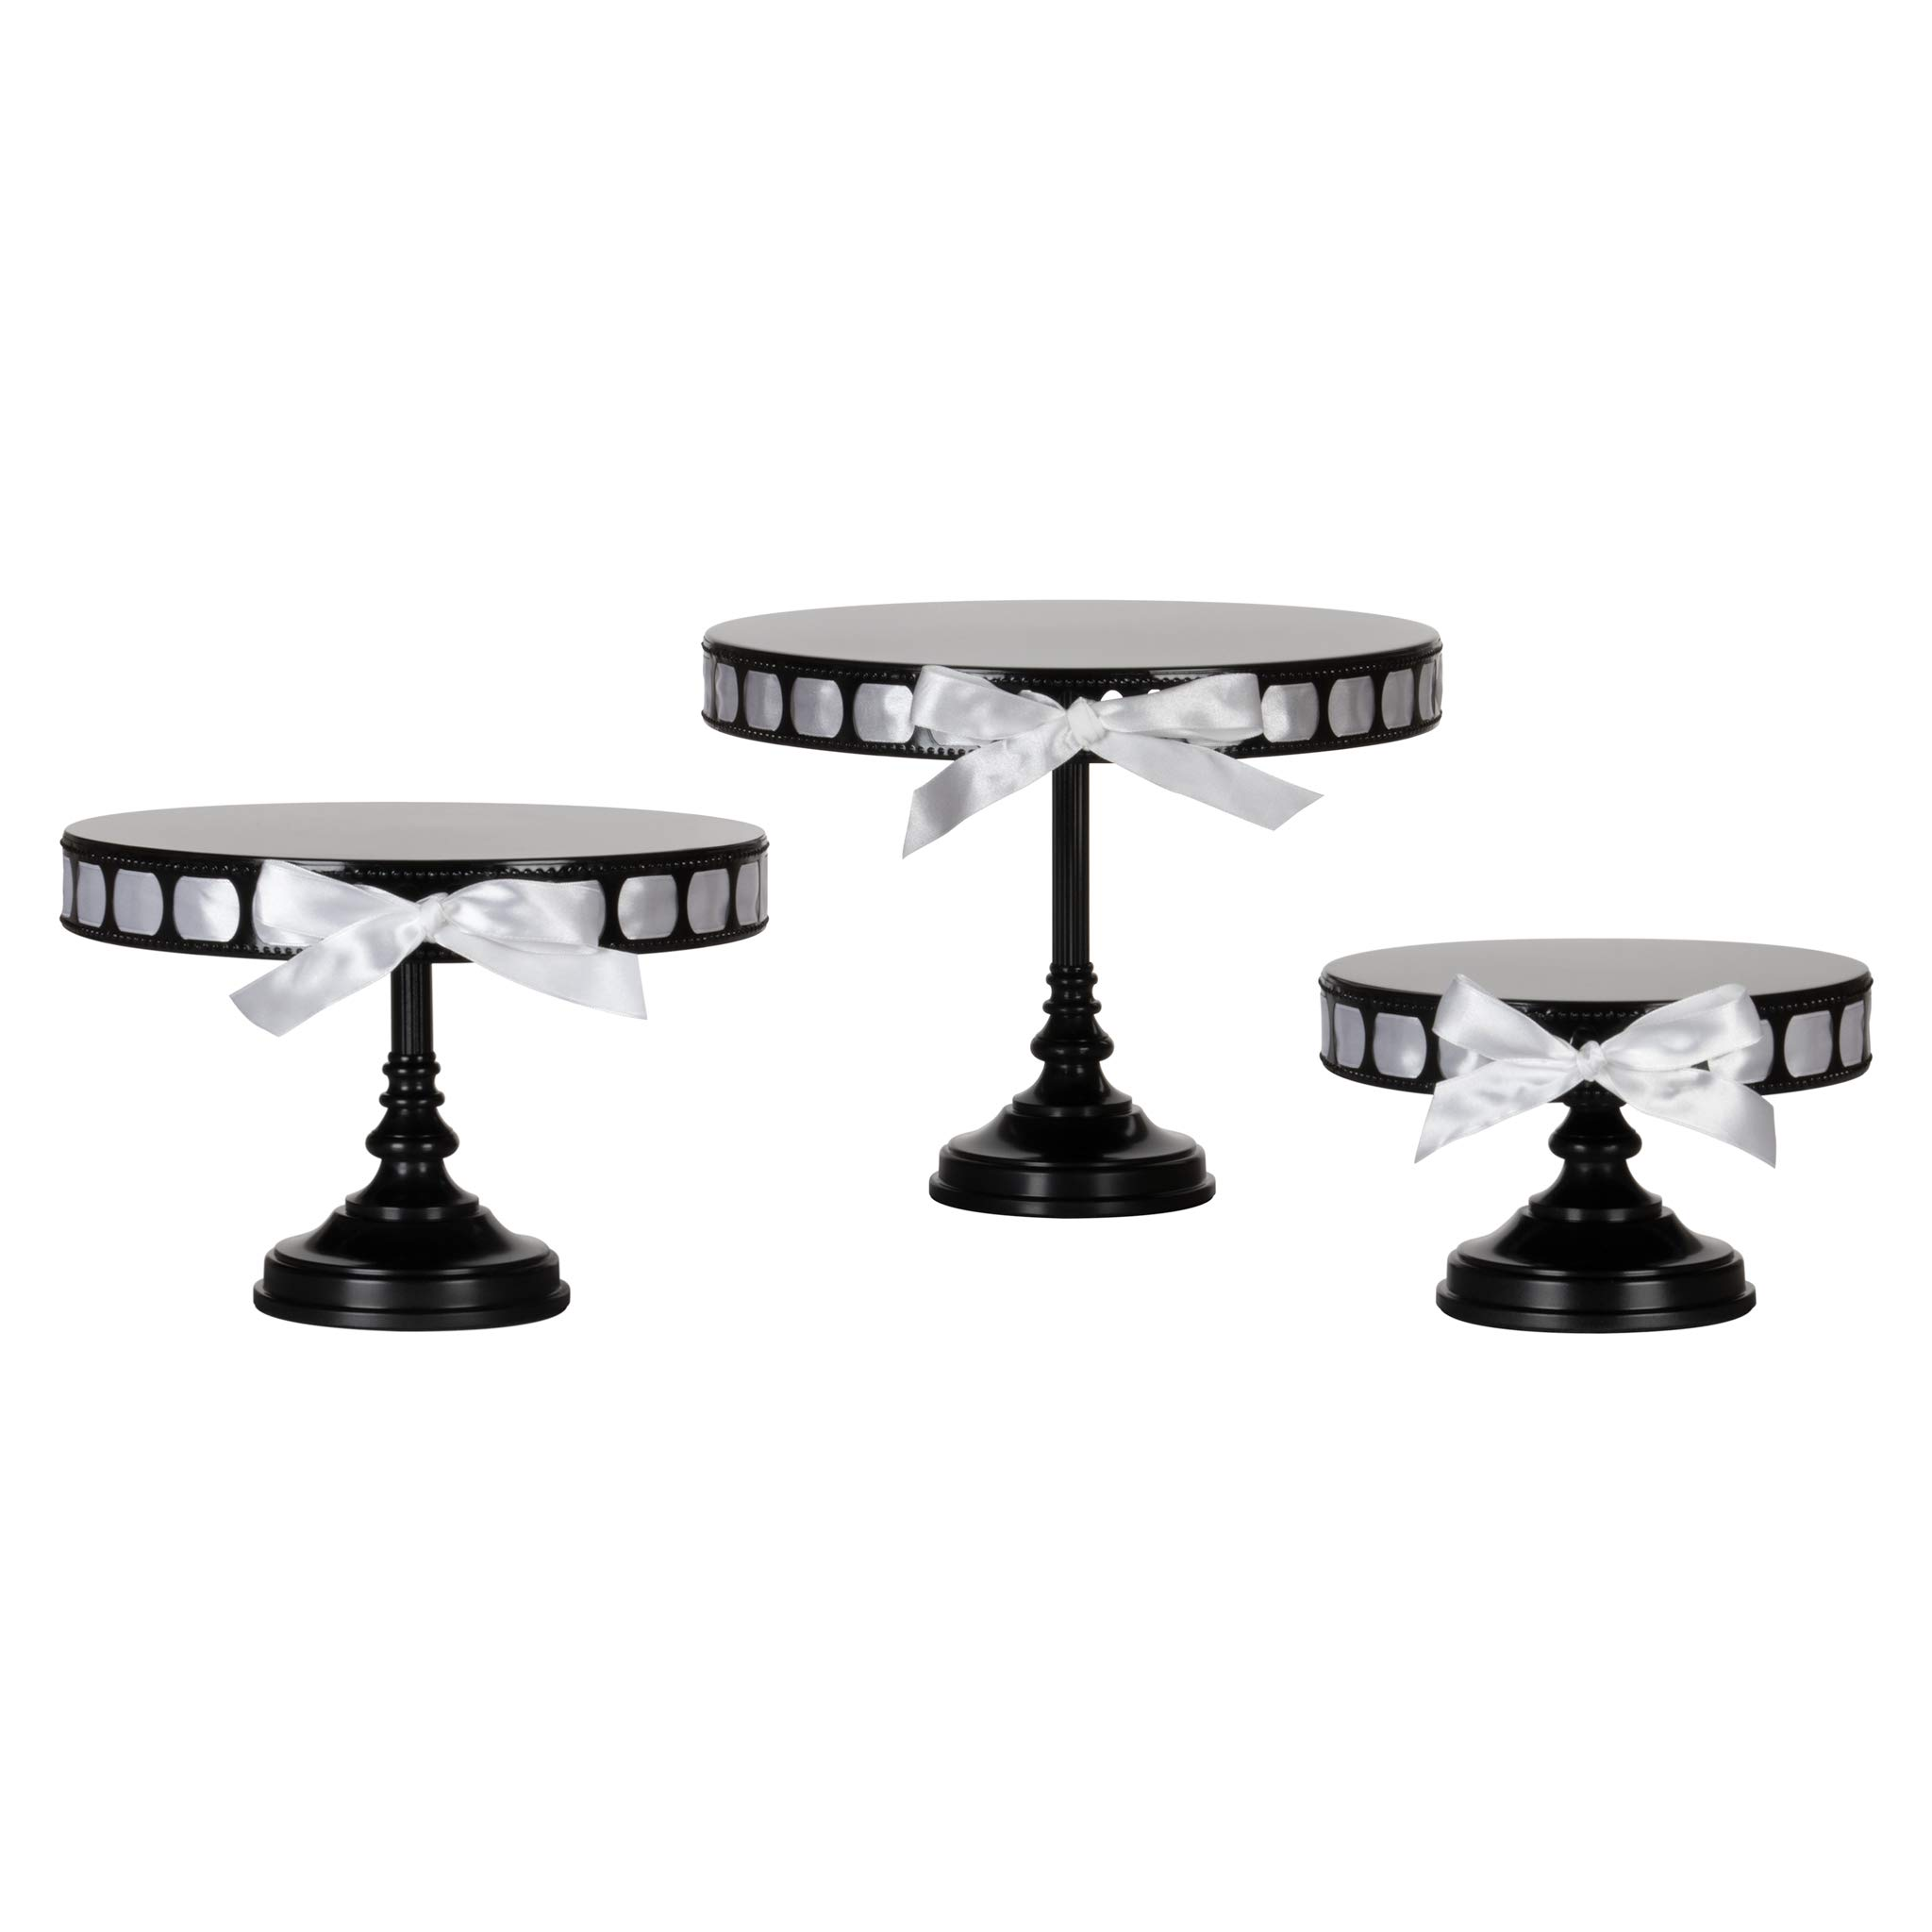 Amalfi Decor Ribbon Cake Stand Set of 3 Pack, Dessert Cupcake Pastry Candy Plate for Wedding Event Birthday Party, 15 Satin Ribbons Included, DIY Round Pedestal Tray Holder, Black by Amalfi Décor